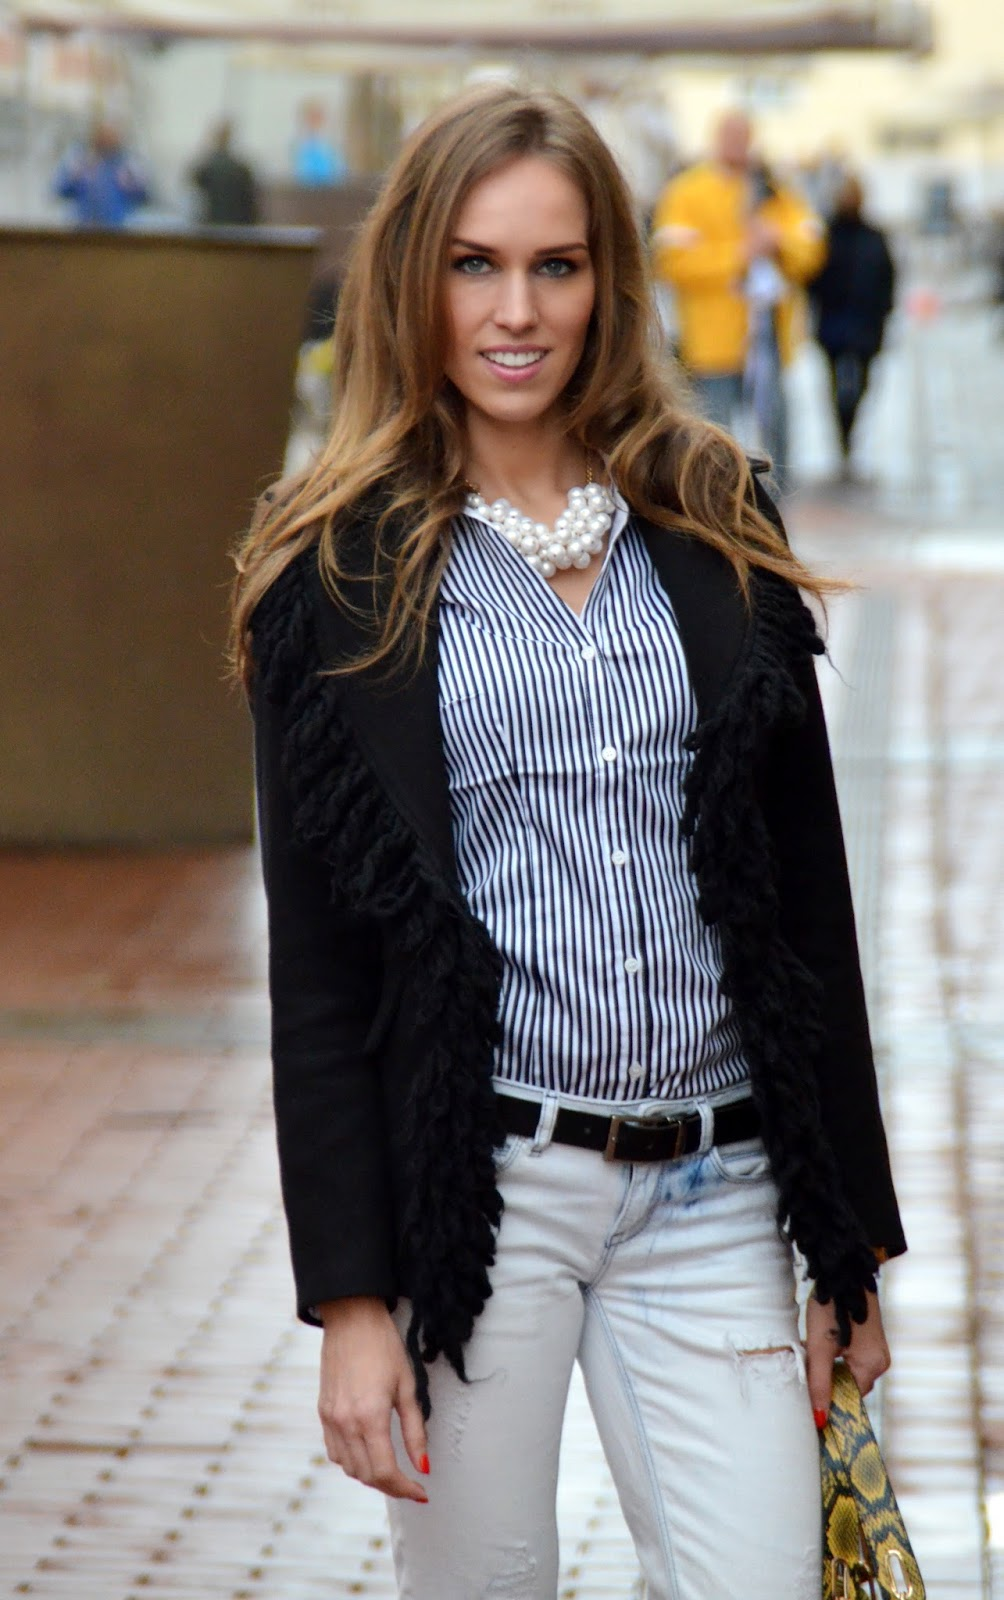 winter-outfit-wool-jacket-striped-shirt